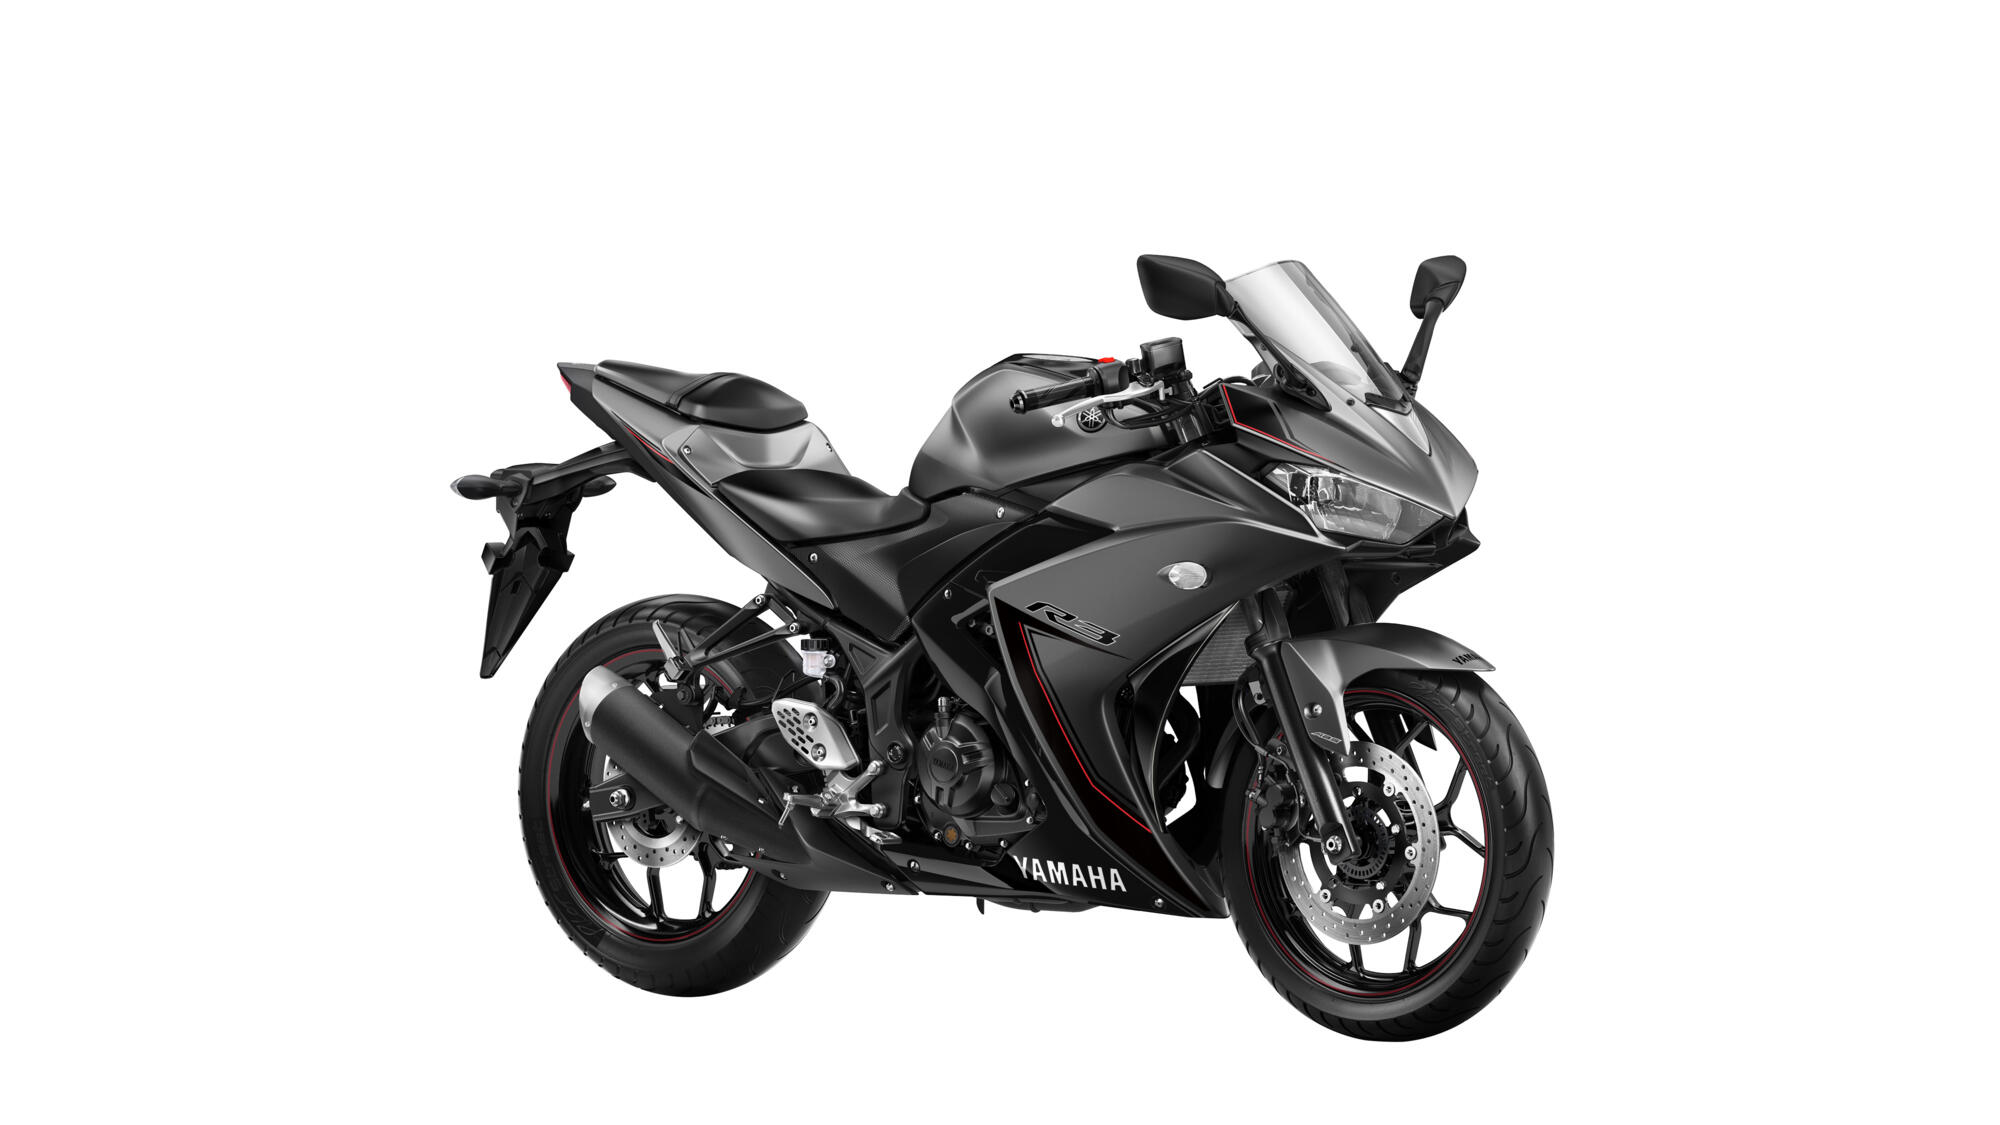 Phenomenal Yamaha Yzf R3 2016 Features And Technical Specifications Lamtechconsult Wood Chair Design Ideas Lamtechconsultcom